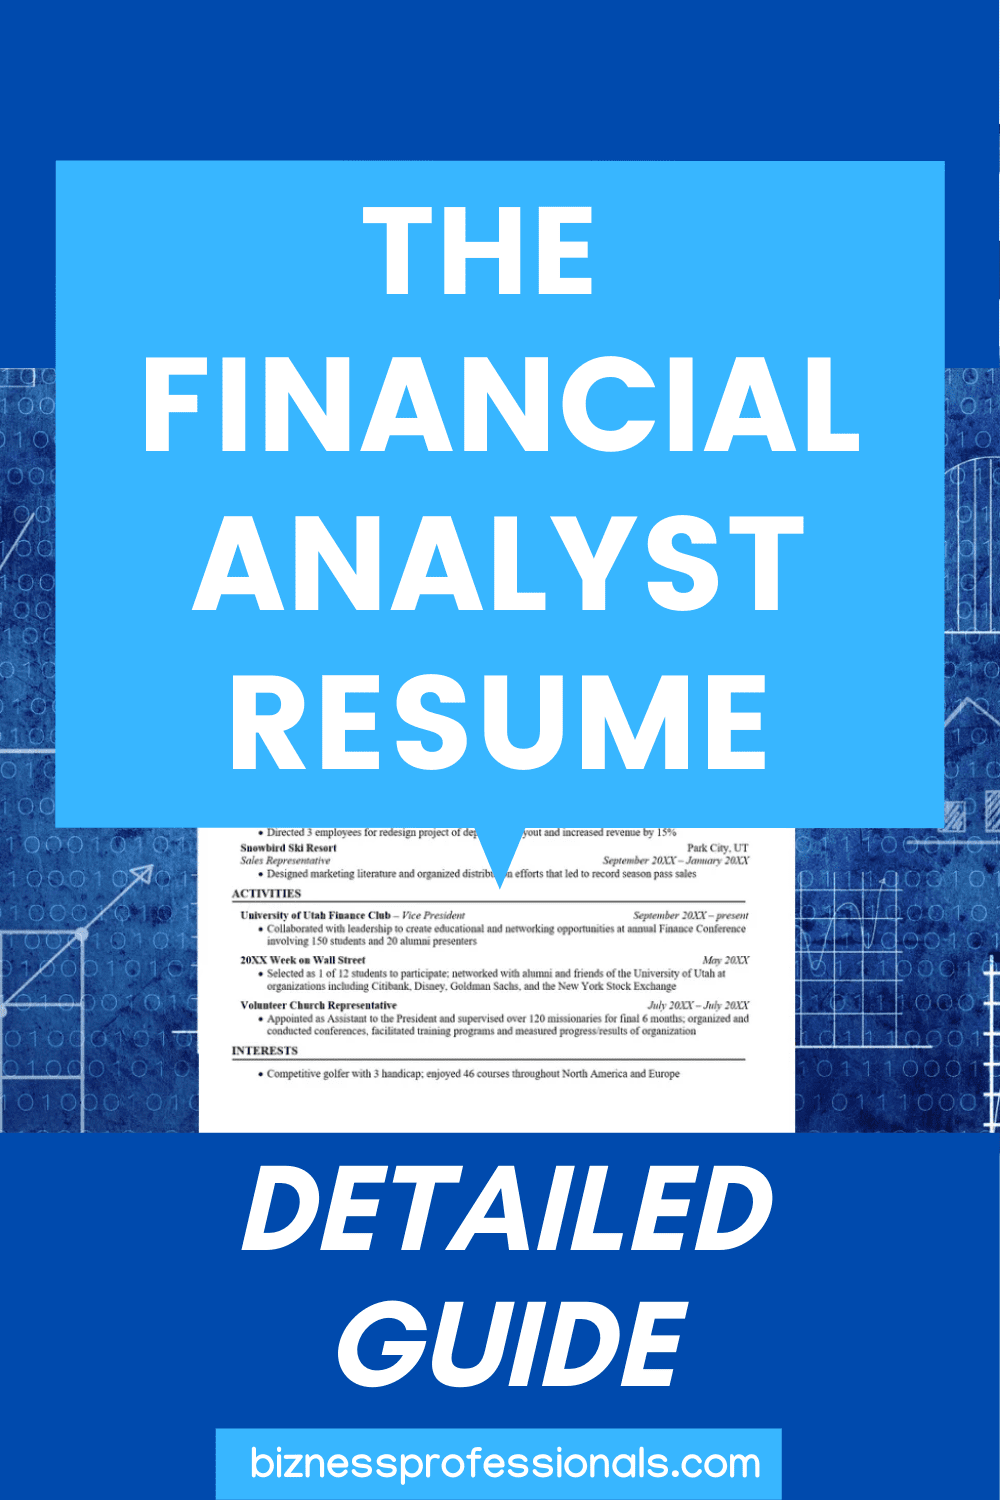 Financial Analyst Skills Resume Of the Financial Analyst Resume Detailed 2020 Guide